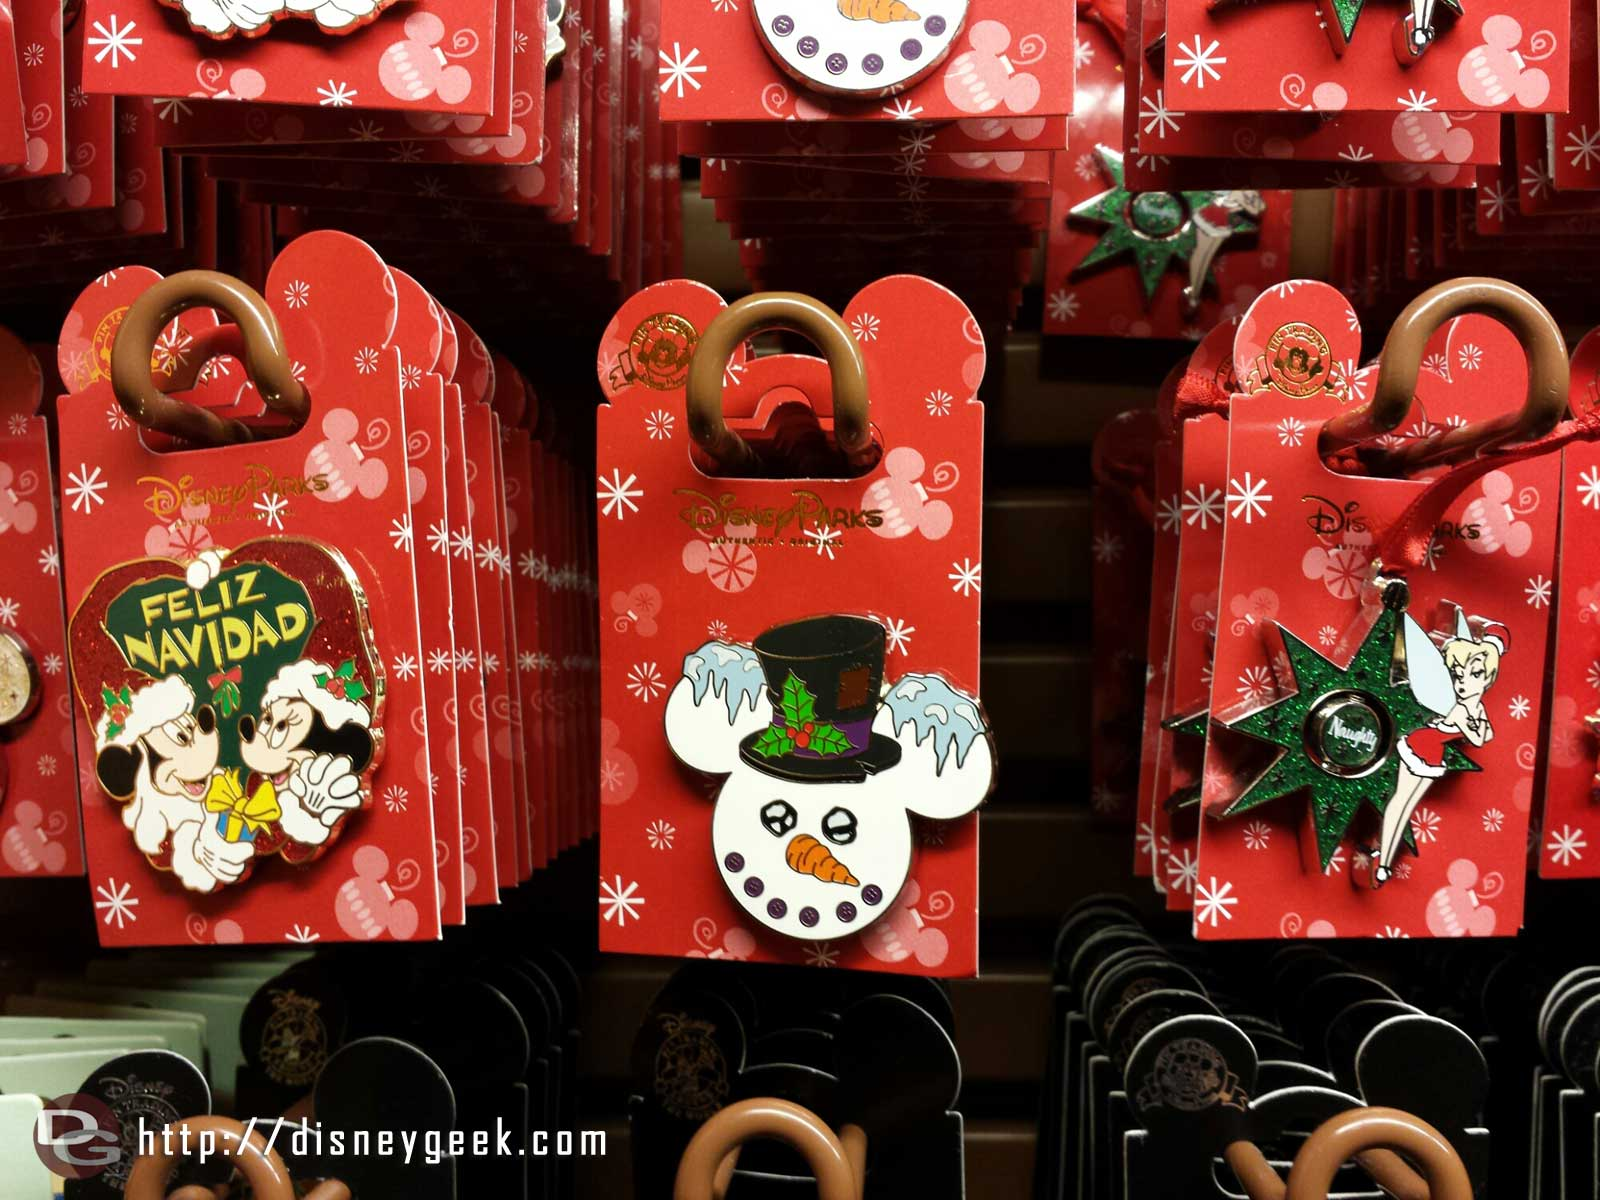 More Christmas Pins (Feliz Navidad, Snowman, and Tinkerbell)